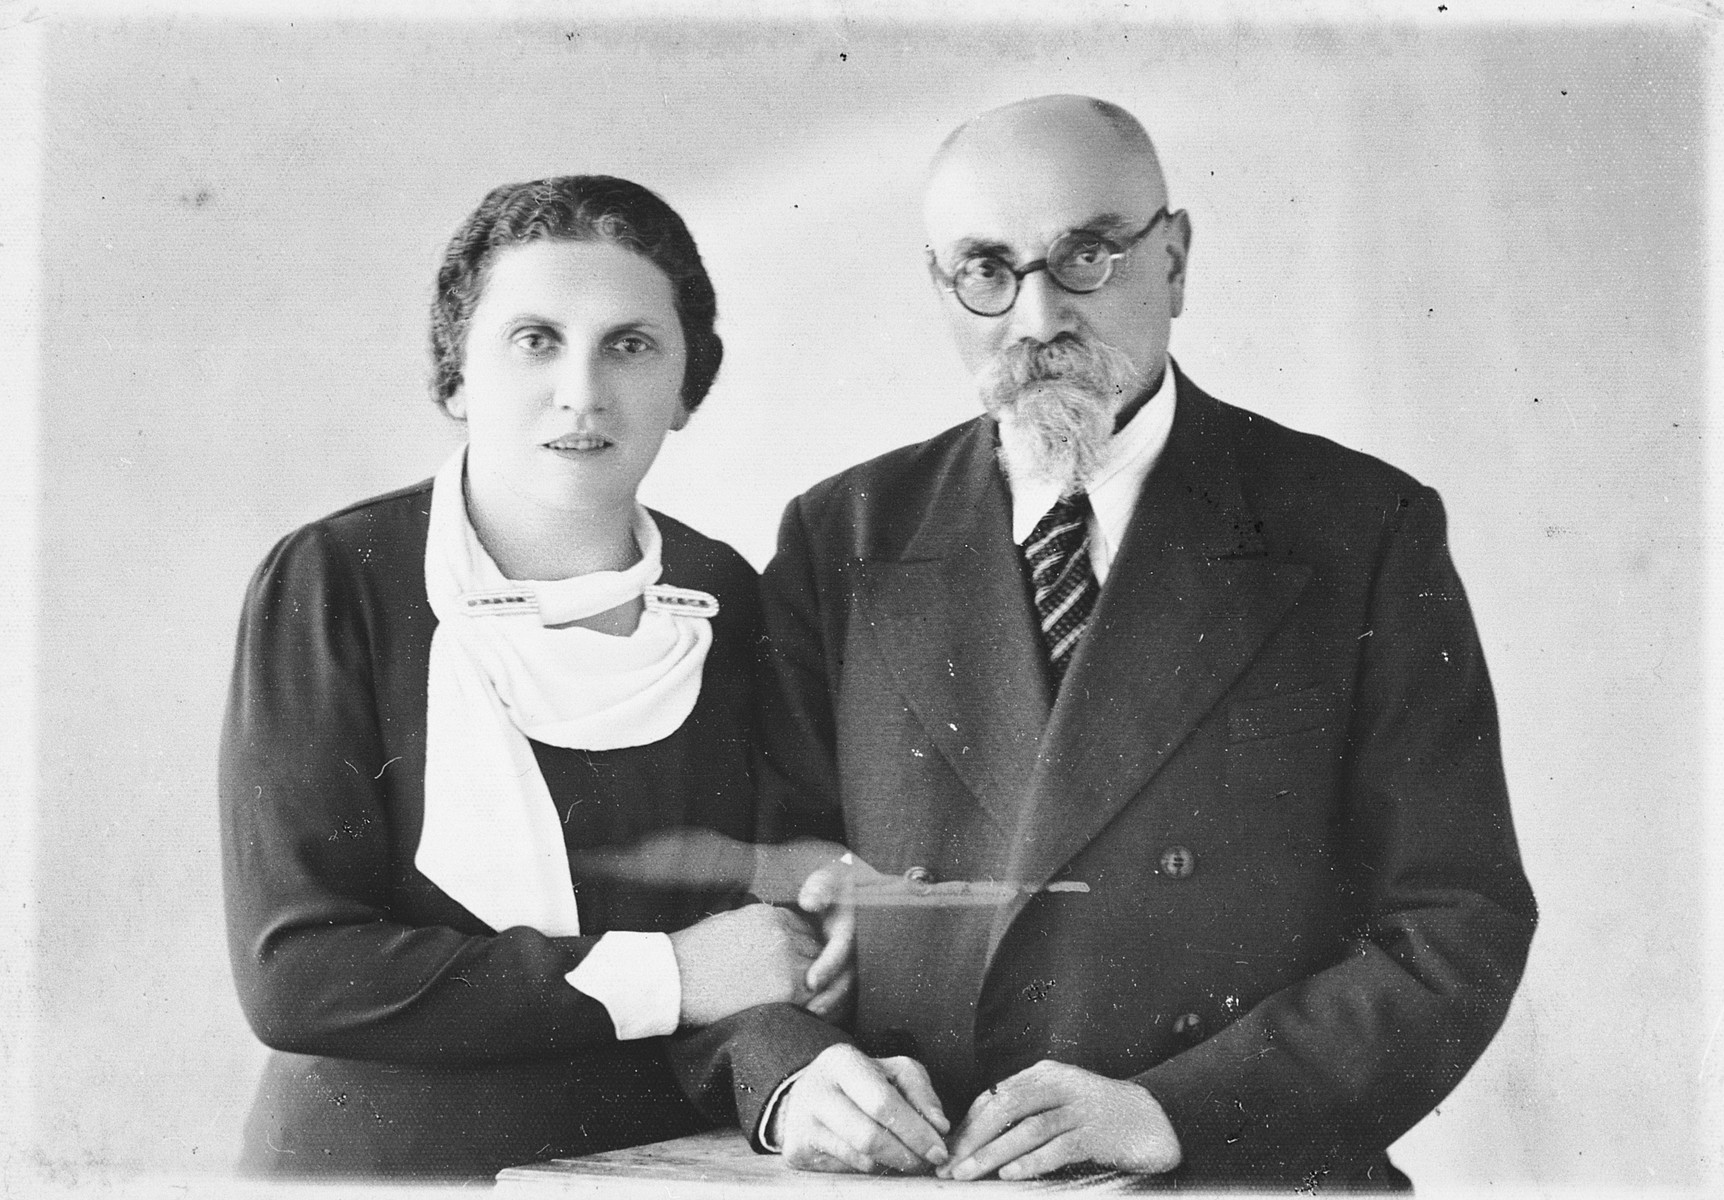 Studio portrait of Miriam Lipert and her father, Chaim Arye Chasan, taken on occassion of her visit from America.